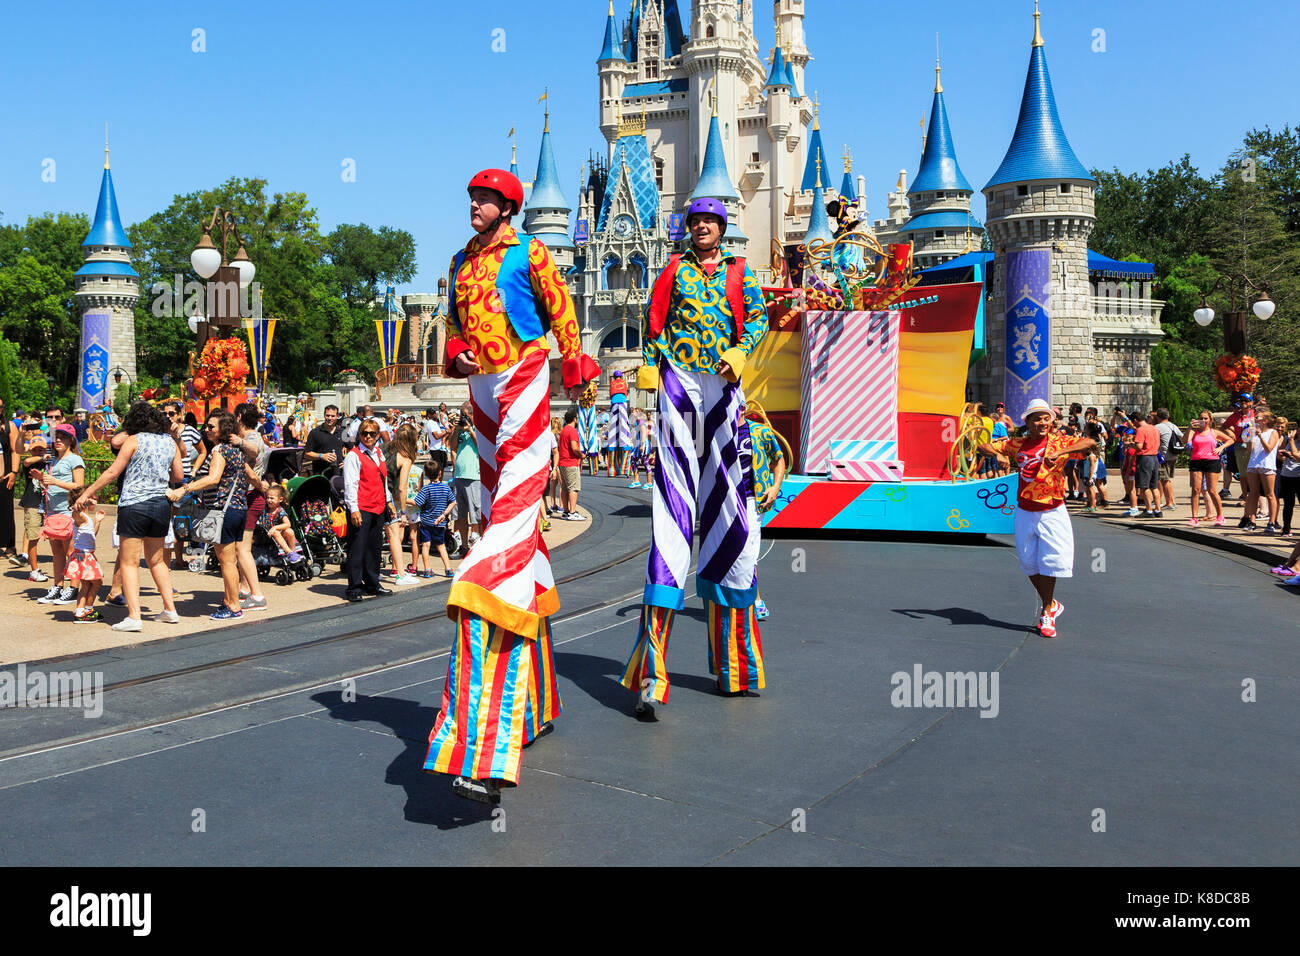 Street Unterhaltung am Walt Disney's Magic Kingdom Theme Park in Orlando, Florida, USA Stockbild